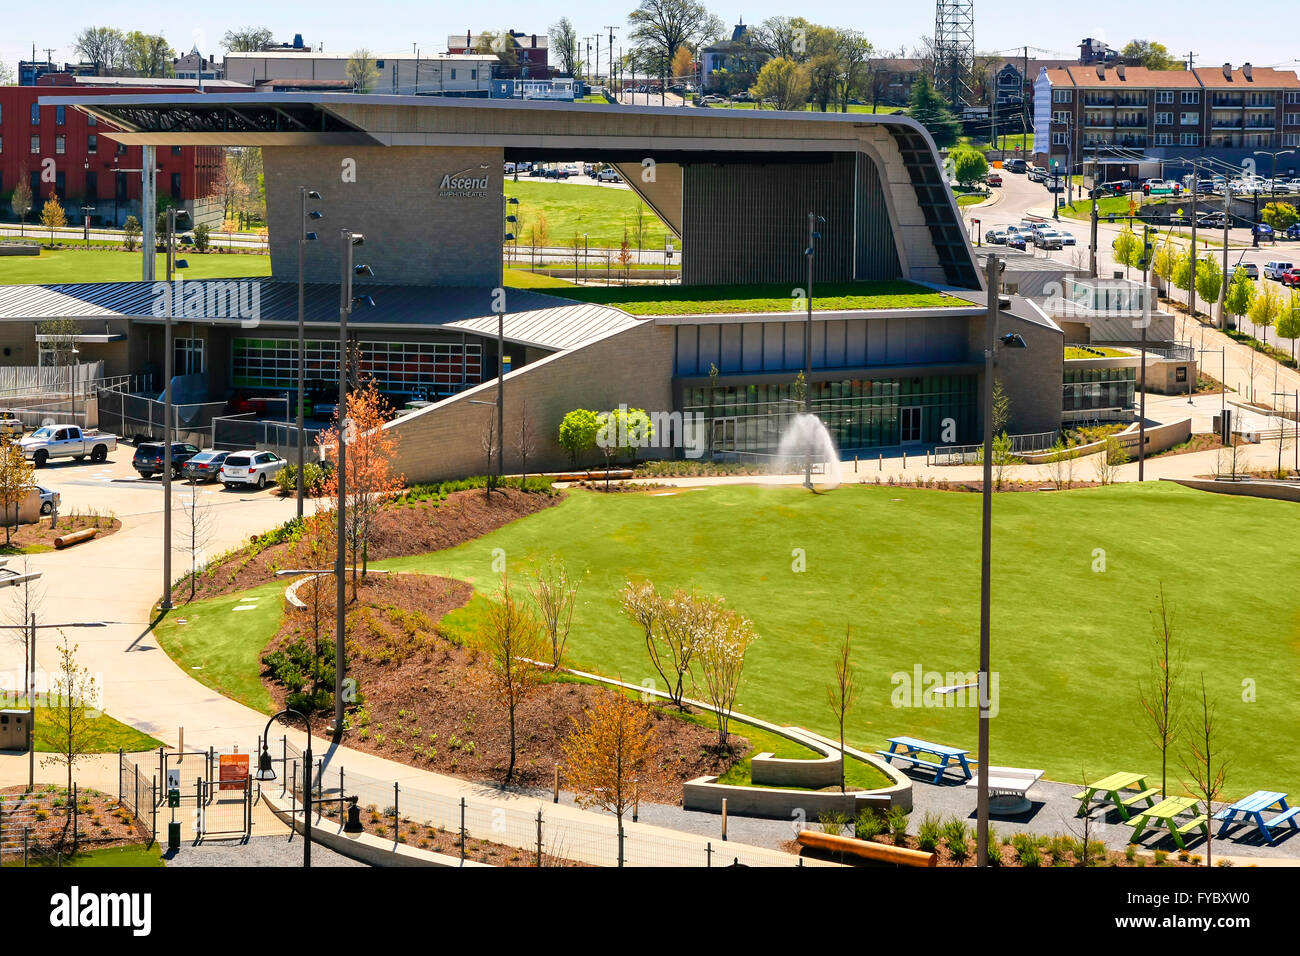 The new Ascend Amphitheater on the west side of Nashville, Tennessee - Stock Image